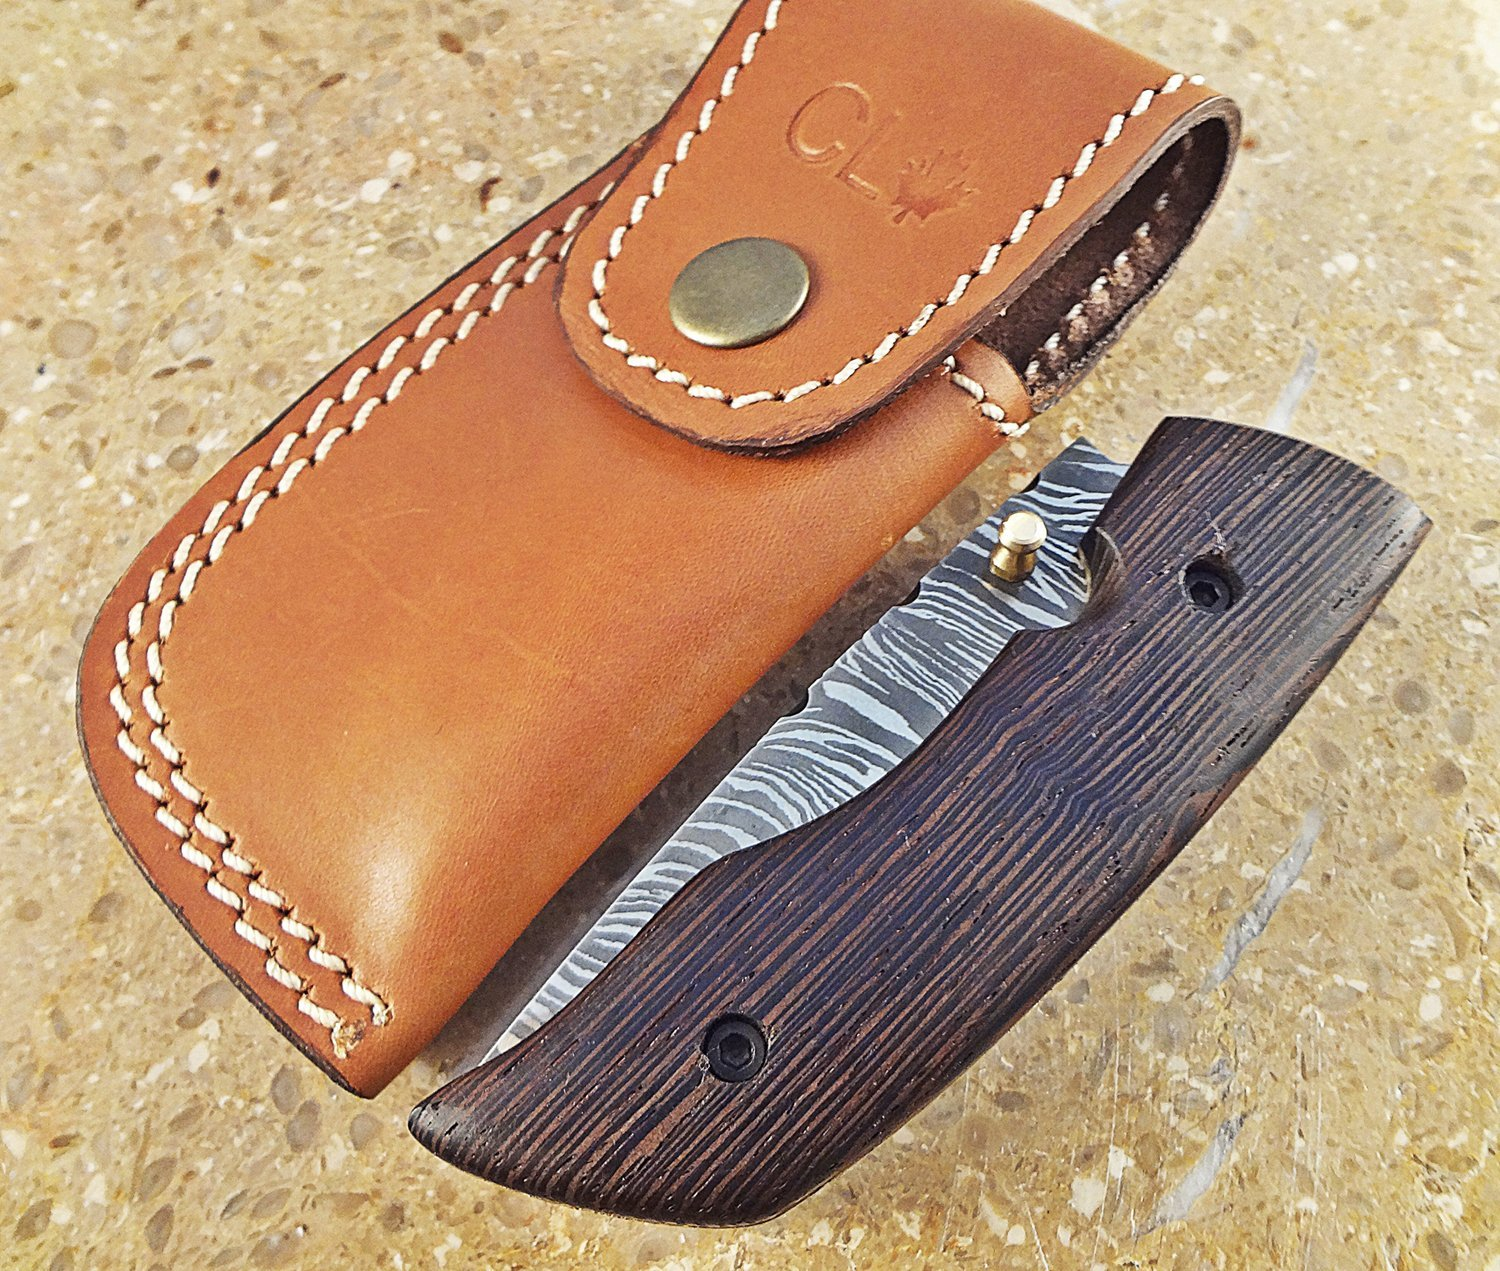 Christmas Gift Offer by ColdLand Knives (LIMITED EDITION) | One-Of-A-Kind Custom Handmade Damascus Steel Folding Pocket Knife Exotic Padauk Wood Handle WF17